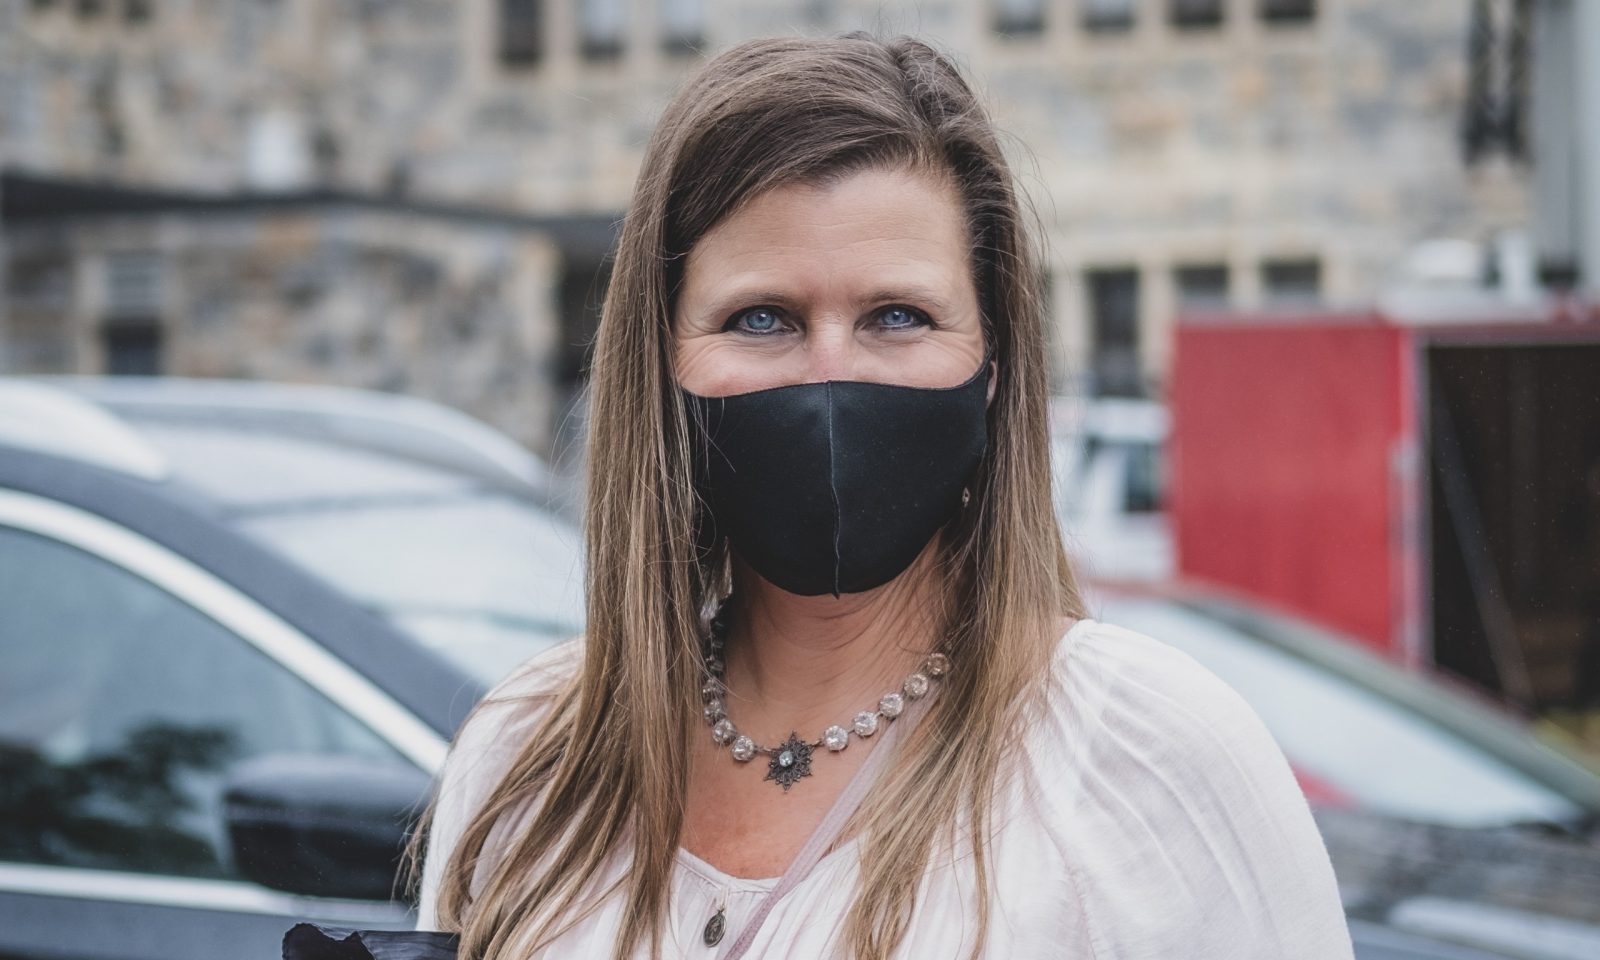 Portrait of someone in a black mask in front of a building and cars. She has blue eyes and long brown hair, wearing a light pink shirt.